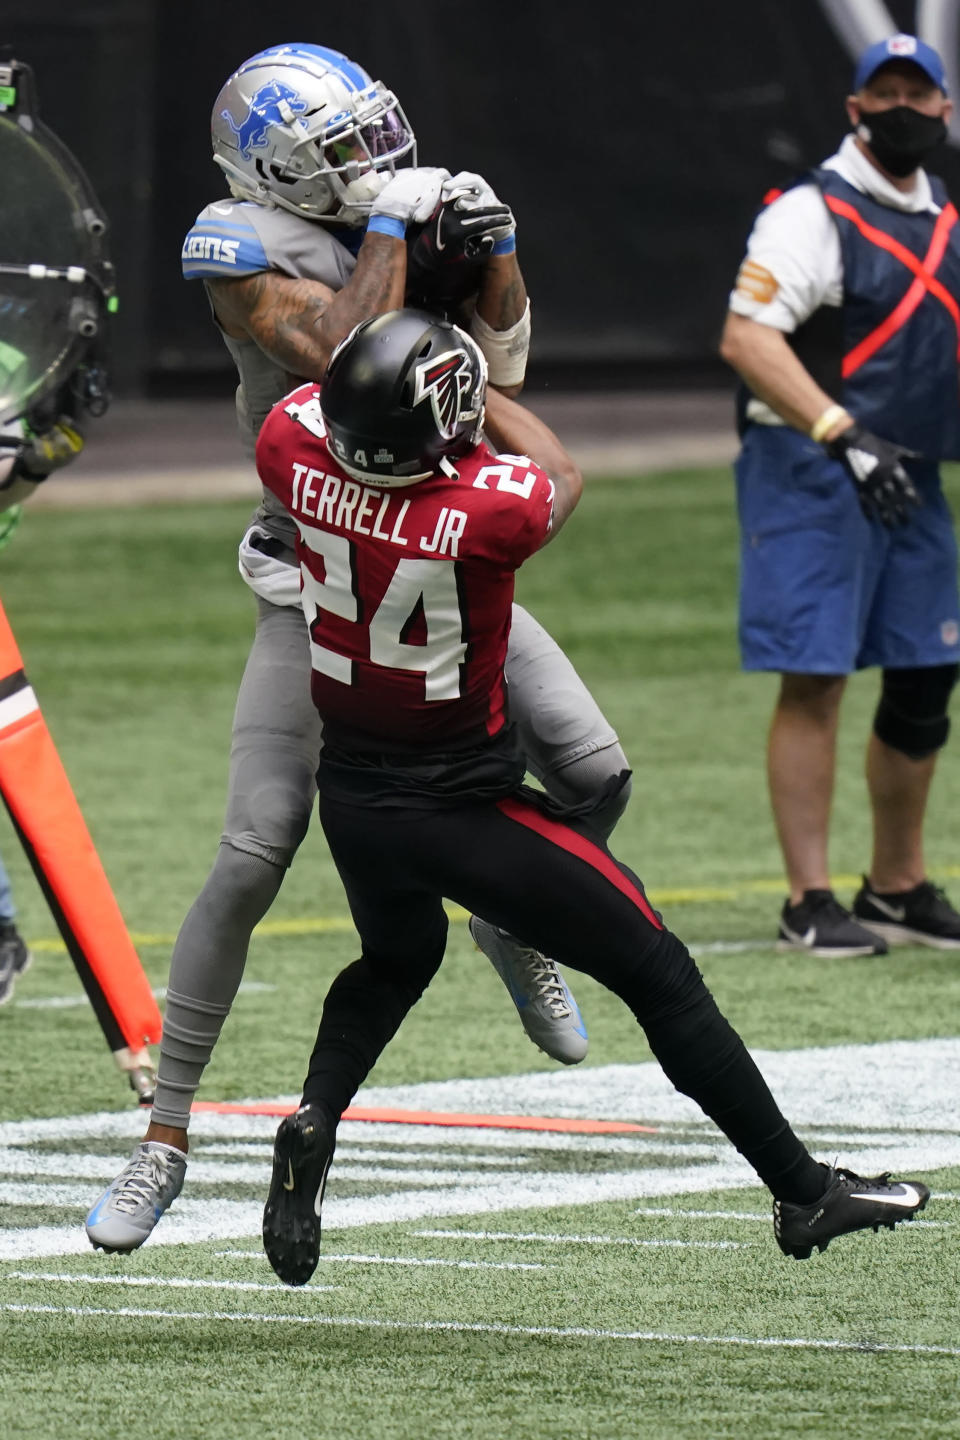 Detroit Lions wide receiver Kenny Golladay (19) makes the catch against Atlanta Falcons cornerback A.J. Terrell (24) during the second half of an NFL football game, Sunday, Oct. 25, 2020, in Atlanta. (AP Photo/Brynn Anderson)